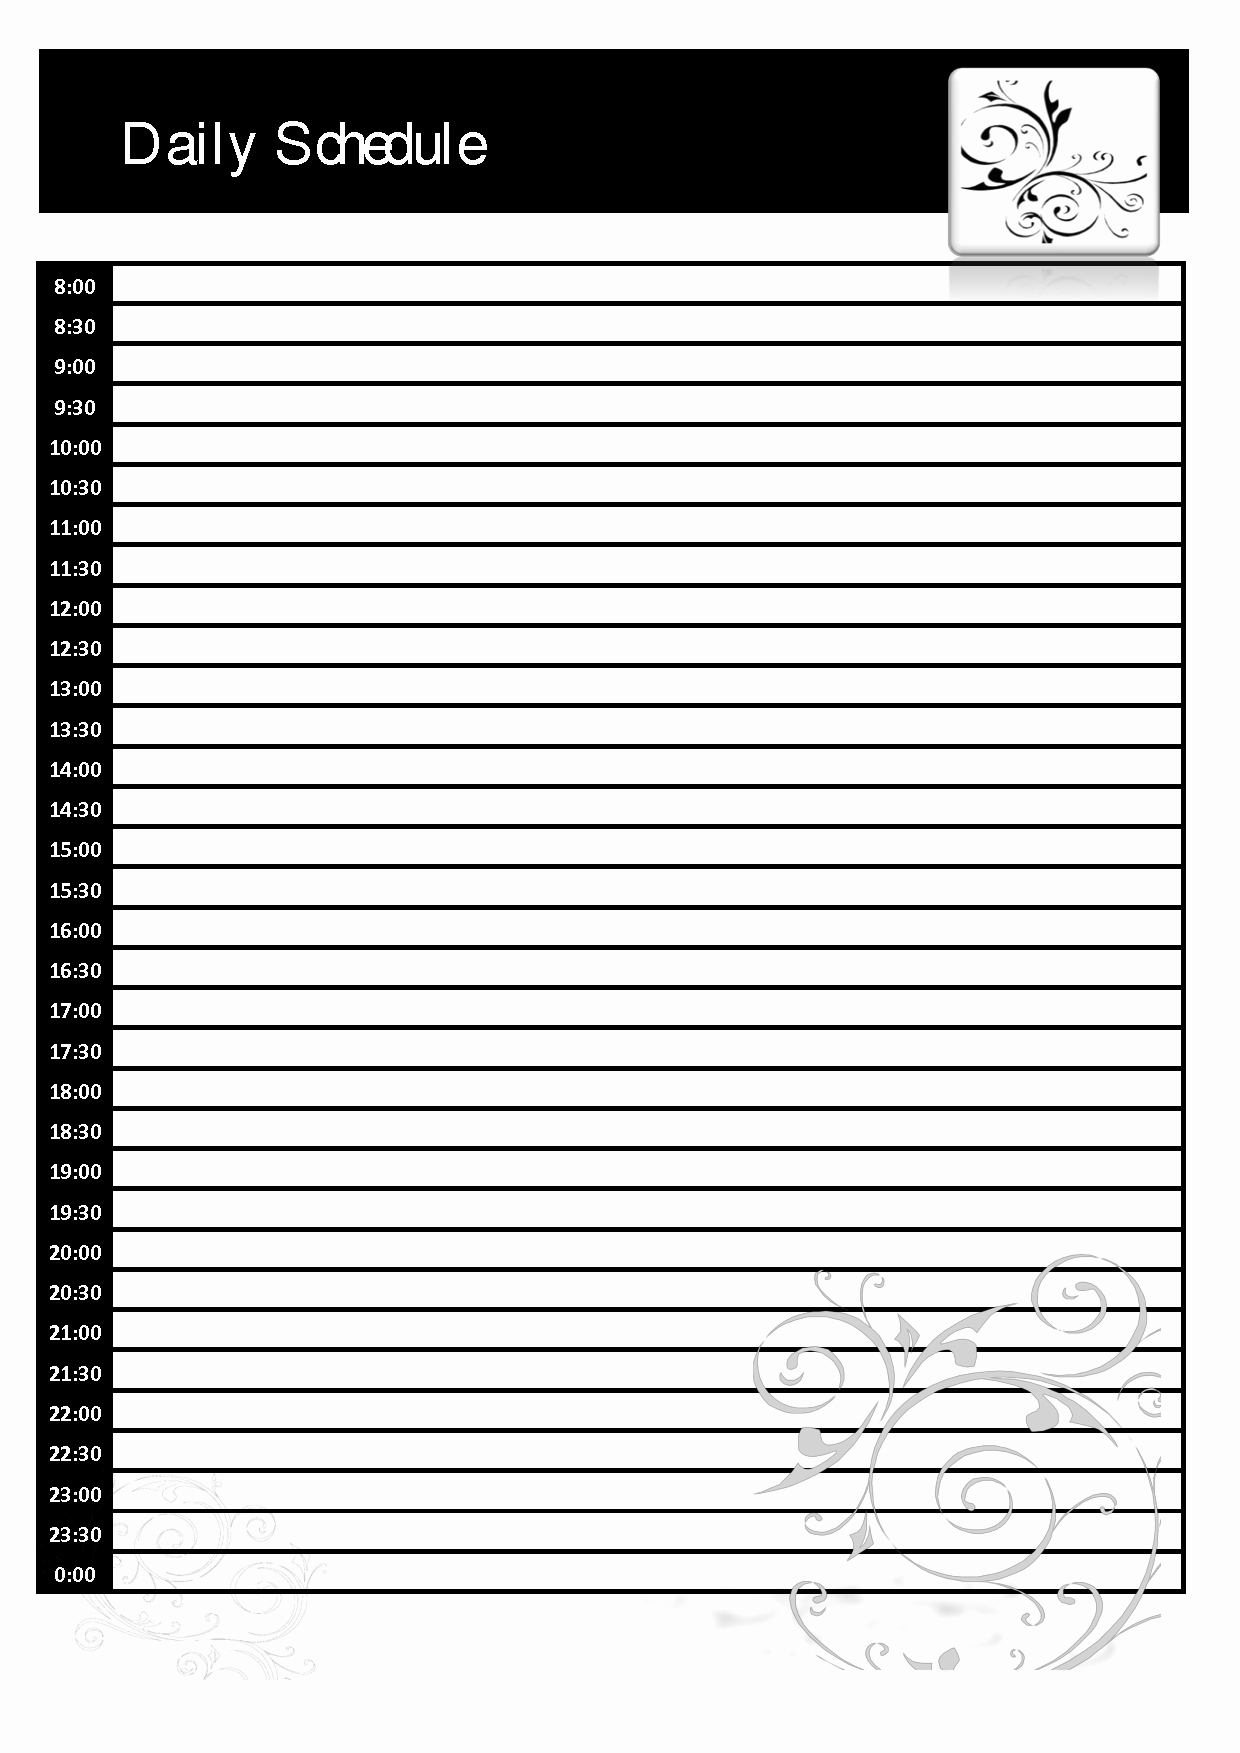 Blank Daily Schedule Template Inspirational Daily Calendar Template Blank